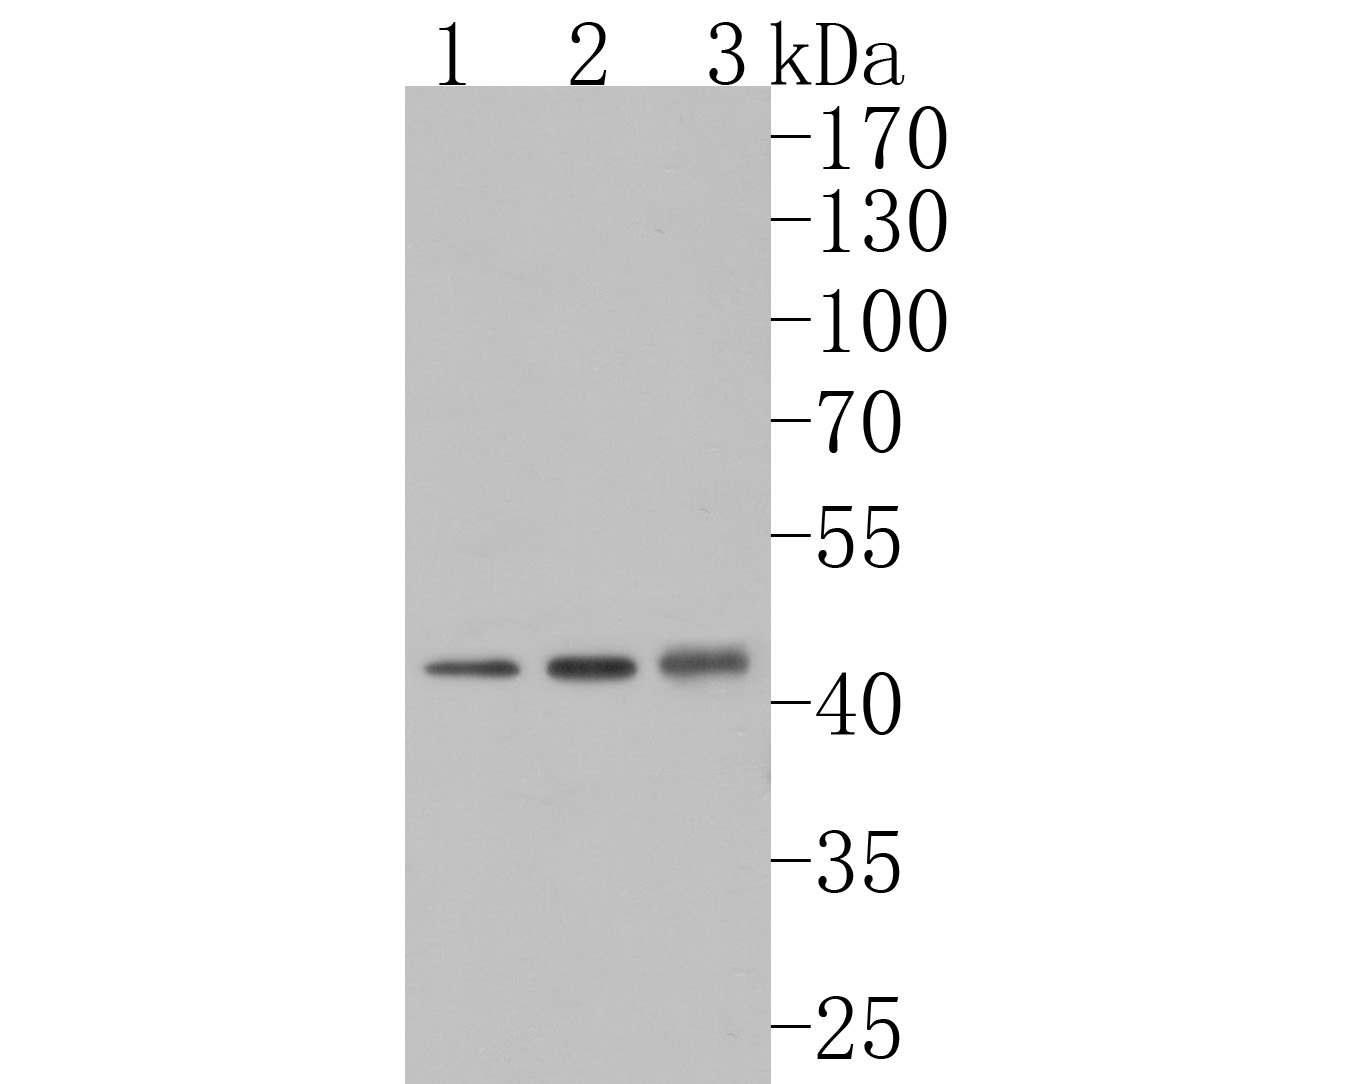 Western blot analysis of NMBR on different lysates. Proteins were transferred to a PVDF membrane and blocked with 5% NFTM/TBST for 1 hour at room temperature. The primary antibody (HA500253, 1/1,000) was used in 5% NFTM/TBST at room temperature for 2 hours. Goat Anti-Rabbit IgG - HRP Secondary Antibody (HA1001) at 1:200,000 dilution was used for 1 hour at room temperature.<br /> Positive control: <br /> Lane 1: A549 cell lysate<br /> Lane 2: Rat brain tissue lysate<br /> Lane 3: Mouse testis tissue lysate